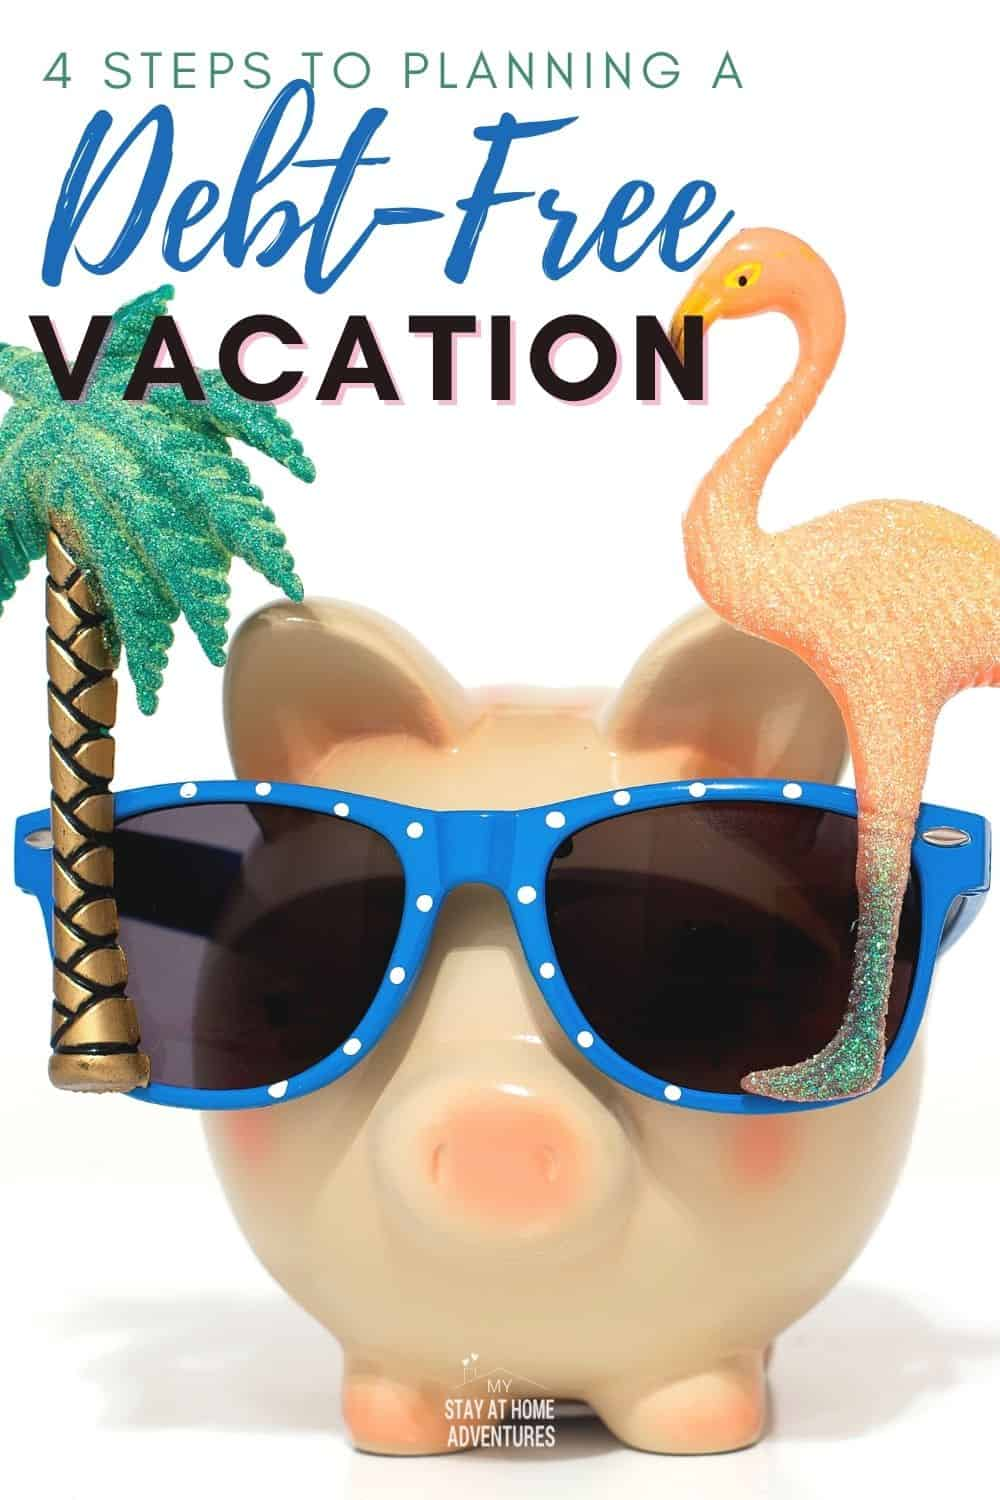 If you're planning a debt-free family vacation this year, start by following these four steps to plan and achieve your goal. Eliminate vacation debt with these four easy steps. via @mystayathome